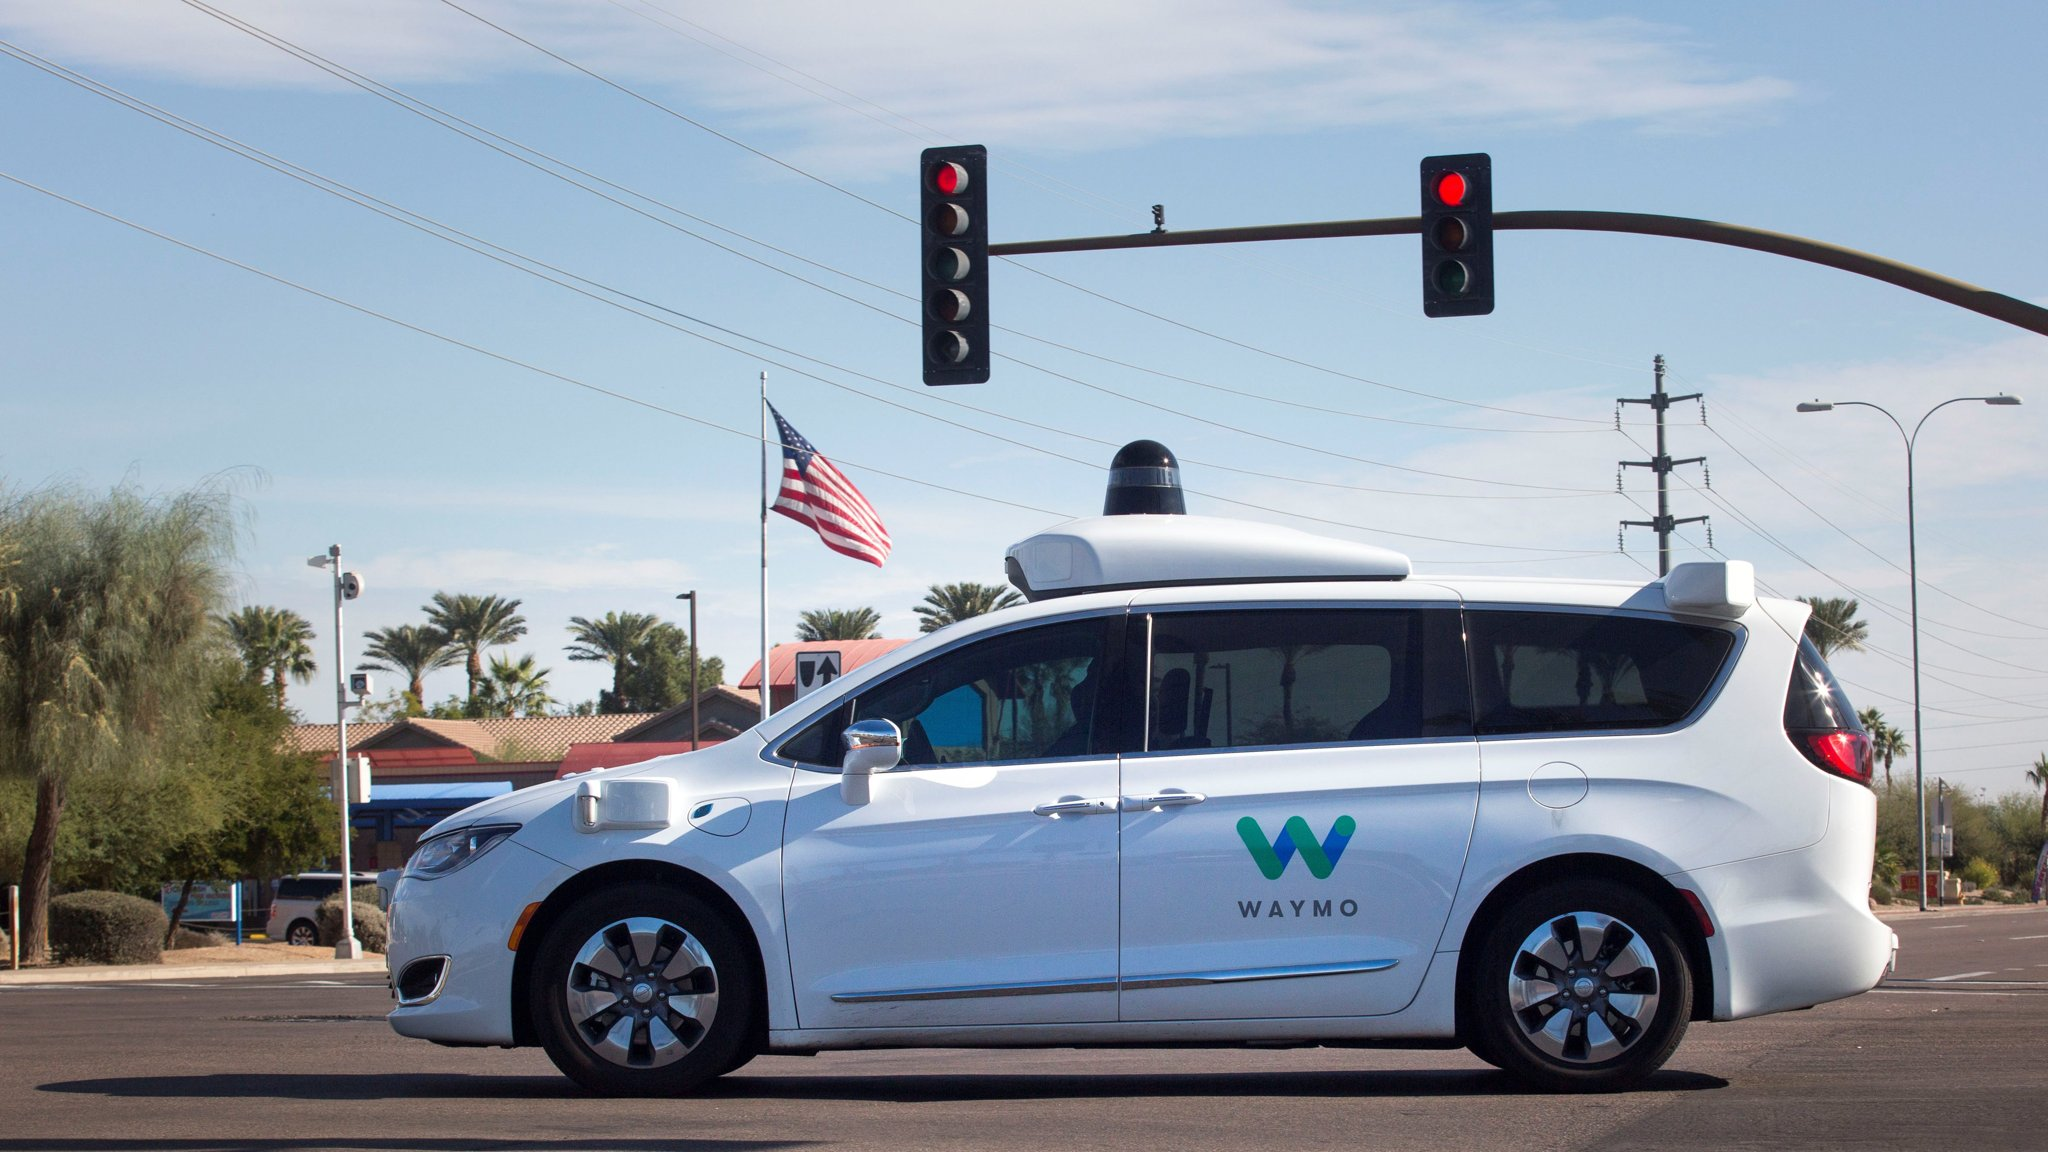 Waymo builds big lead in self-driving car testing